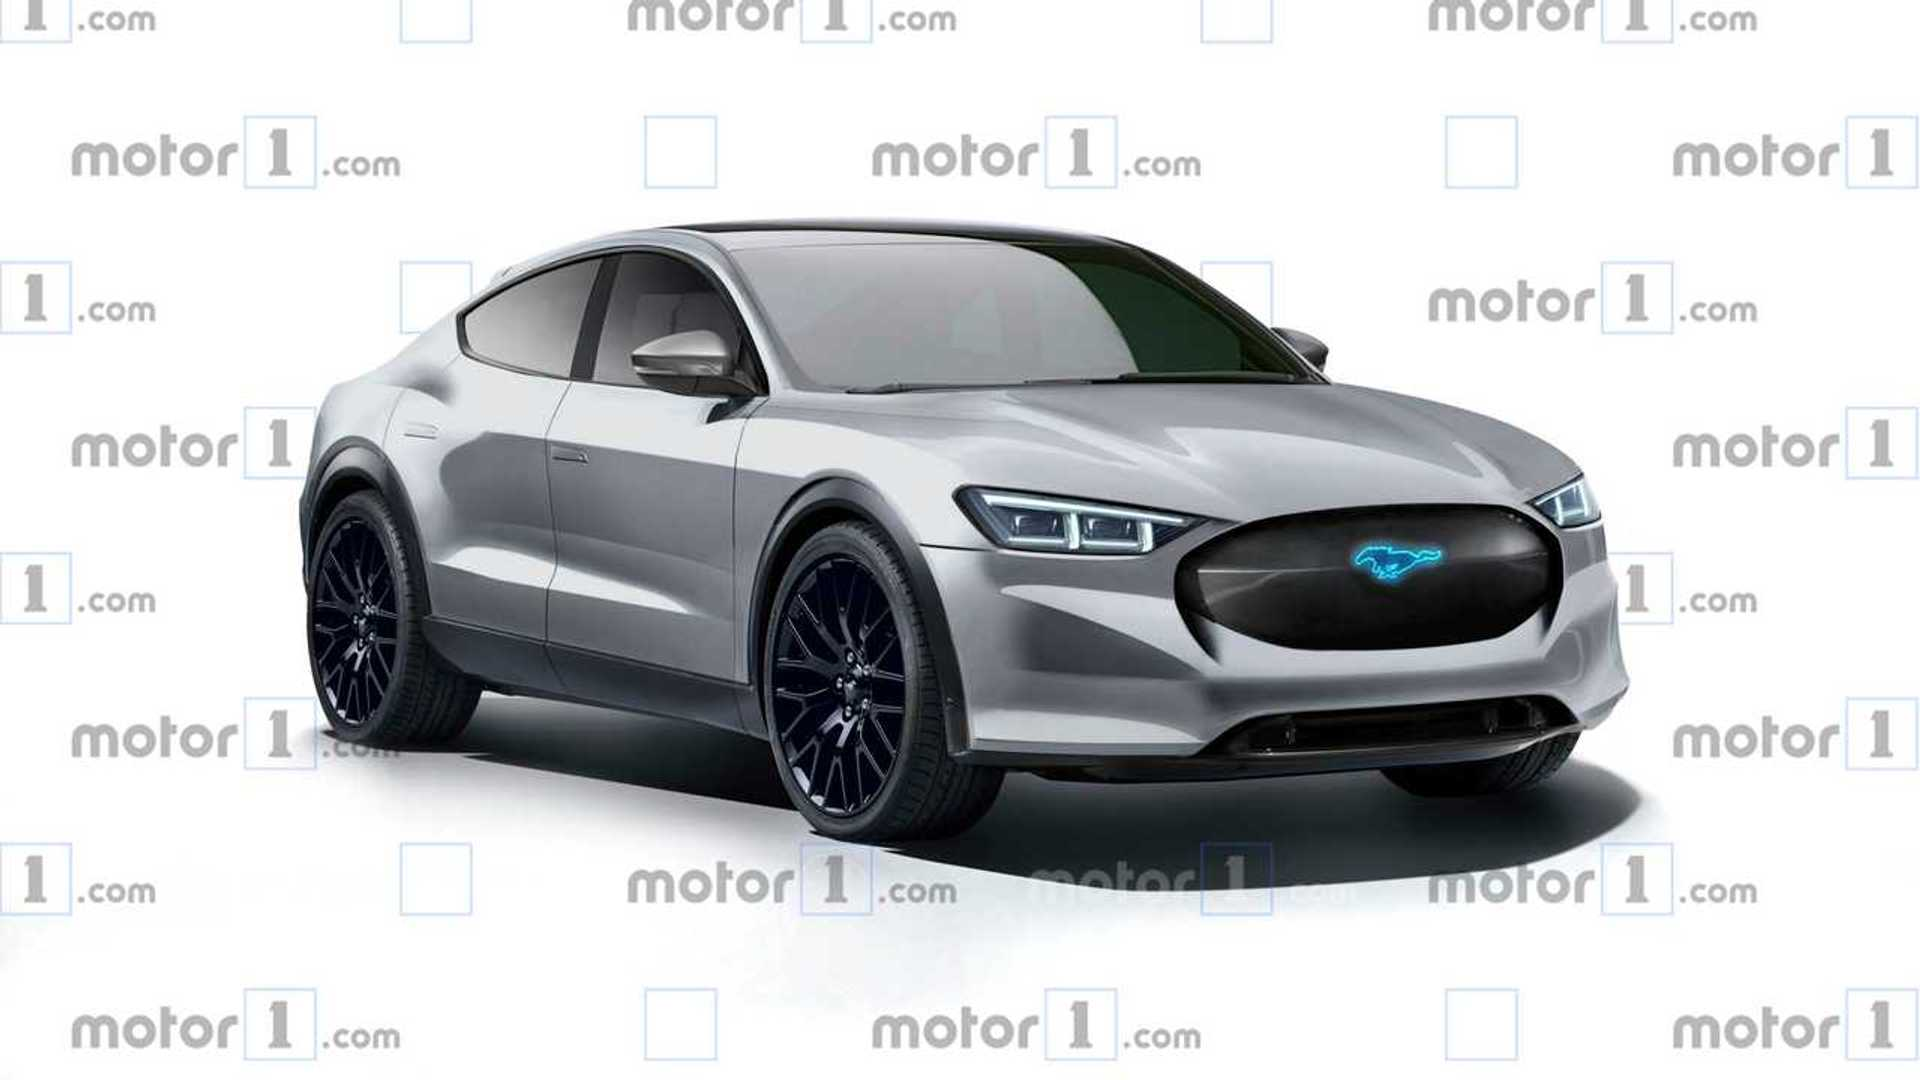 34 New Ford Mustang Suv 2020 Photos